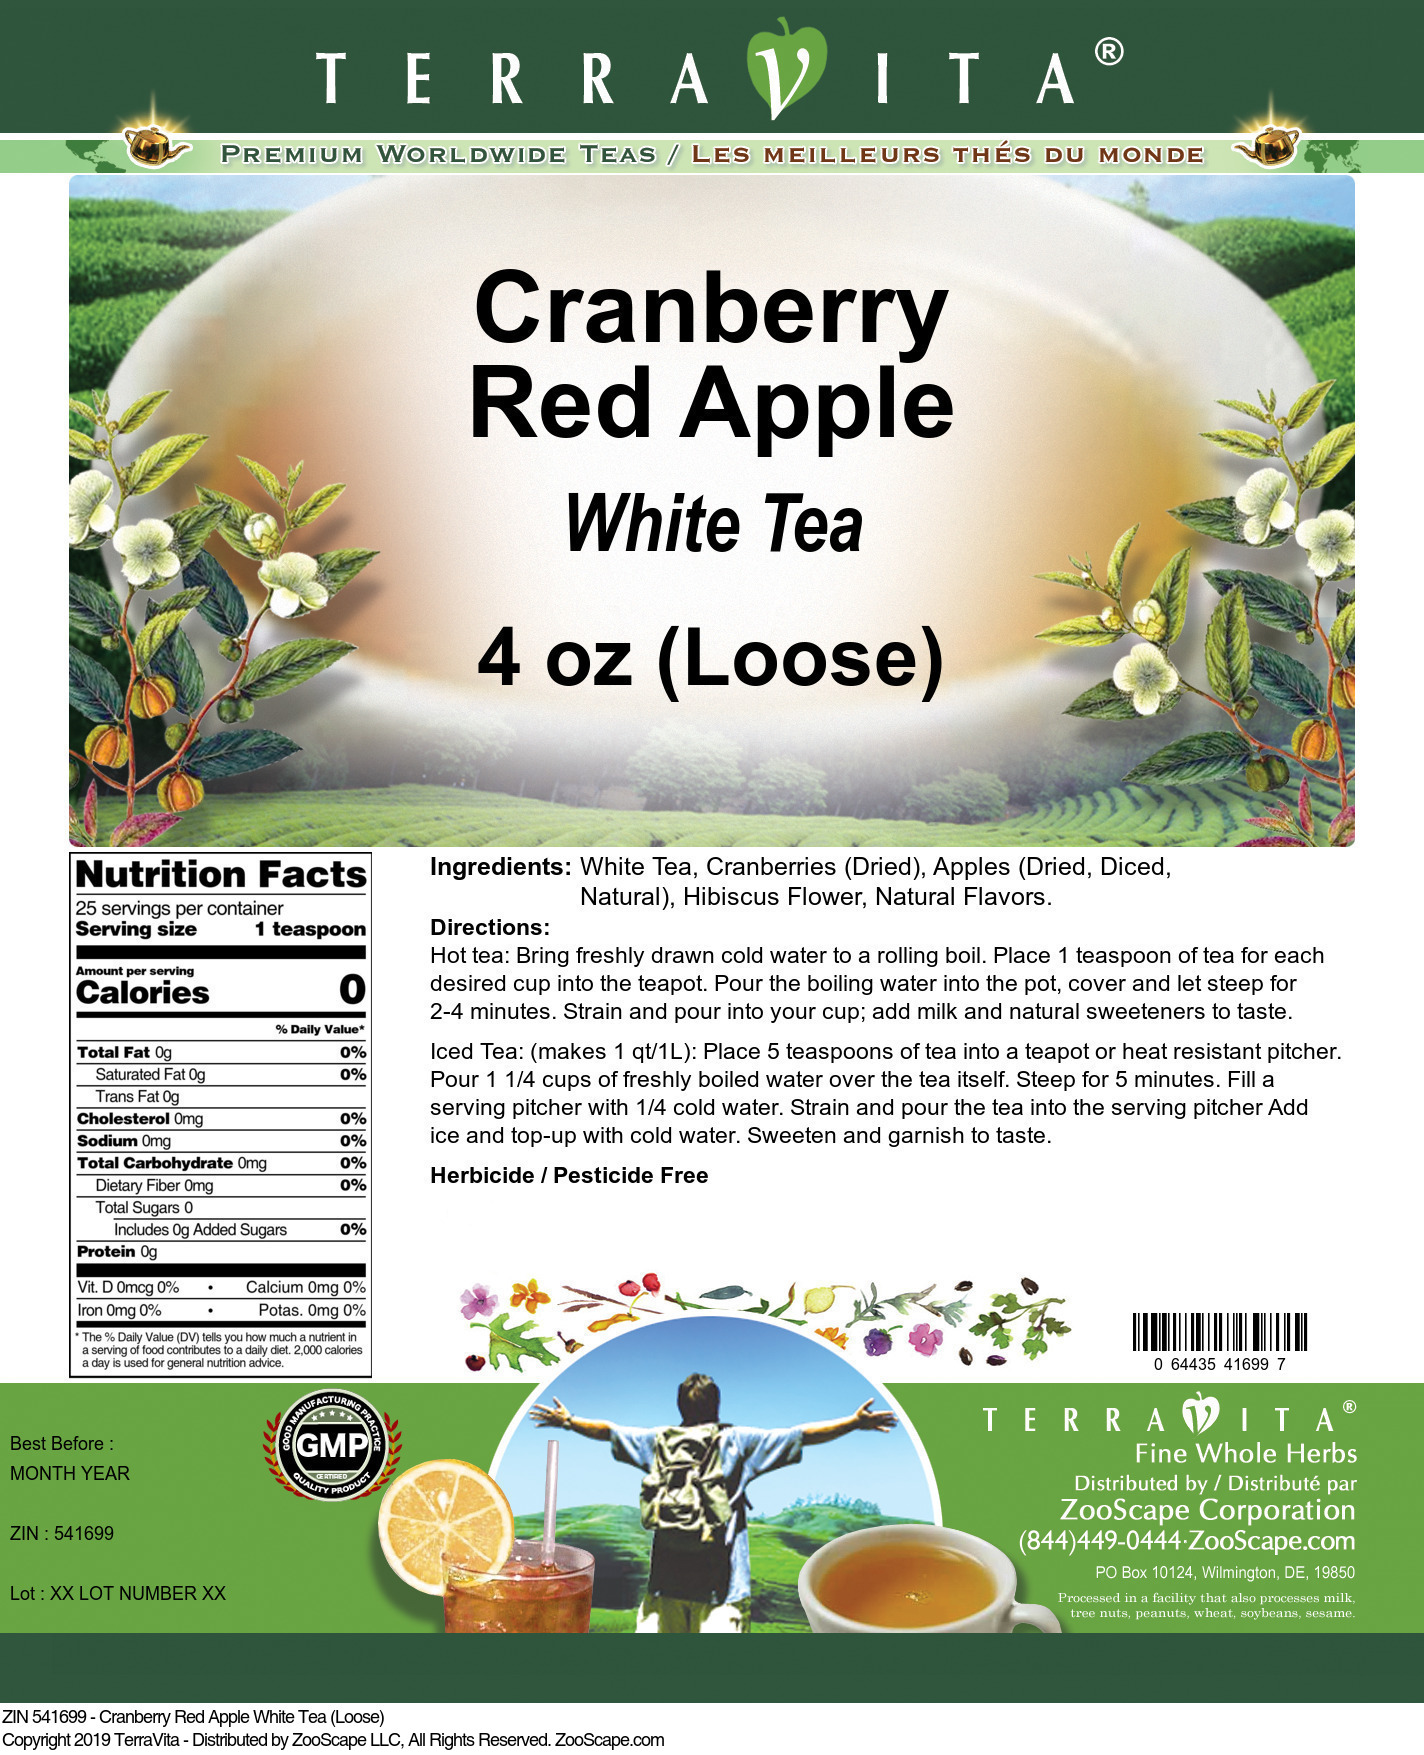 Cranberry Red Apple White Tea (Loose)